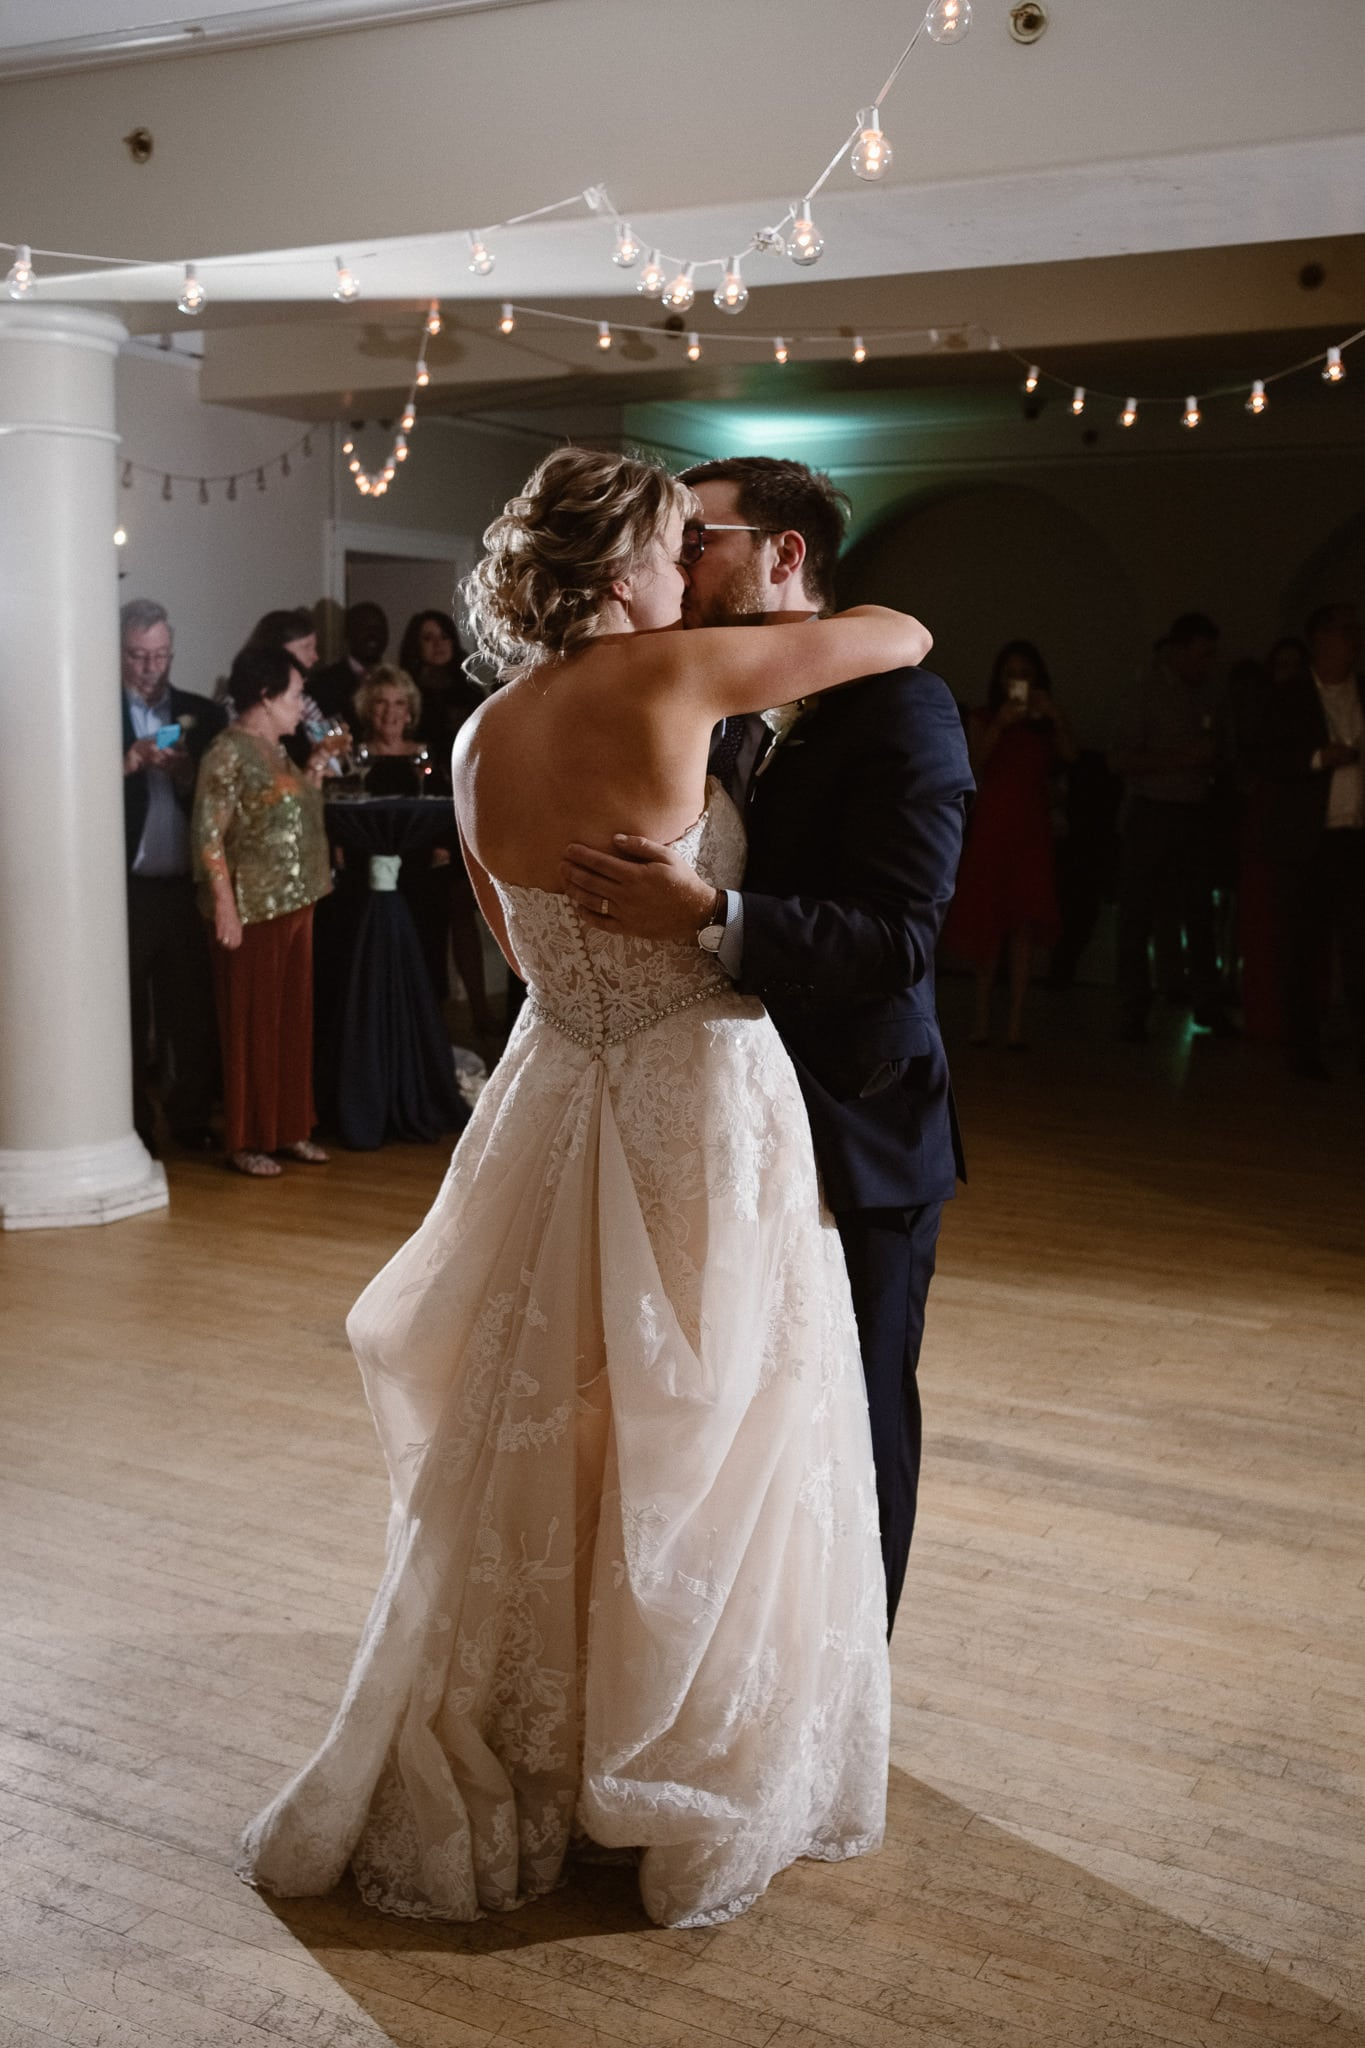 Grant Humphreys Mansion Wedding Photographer, Denver wedding photographer, Colorado wedding photographer, bride and groom first dance